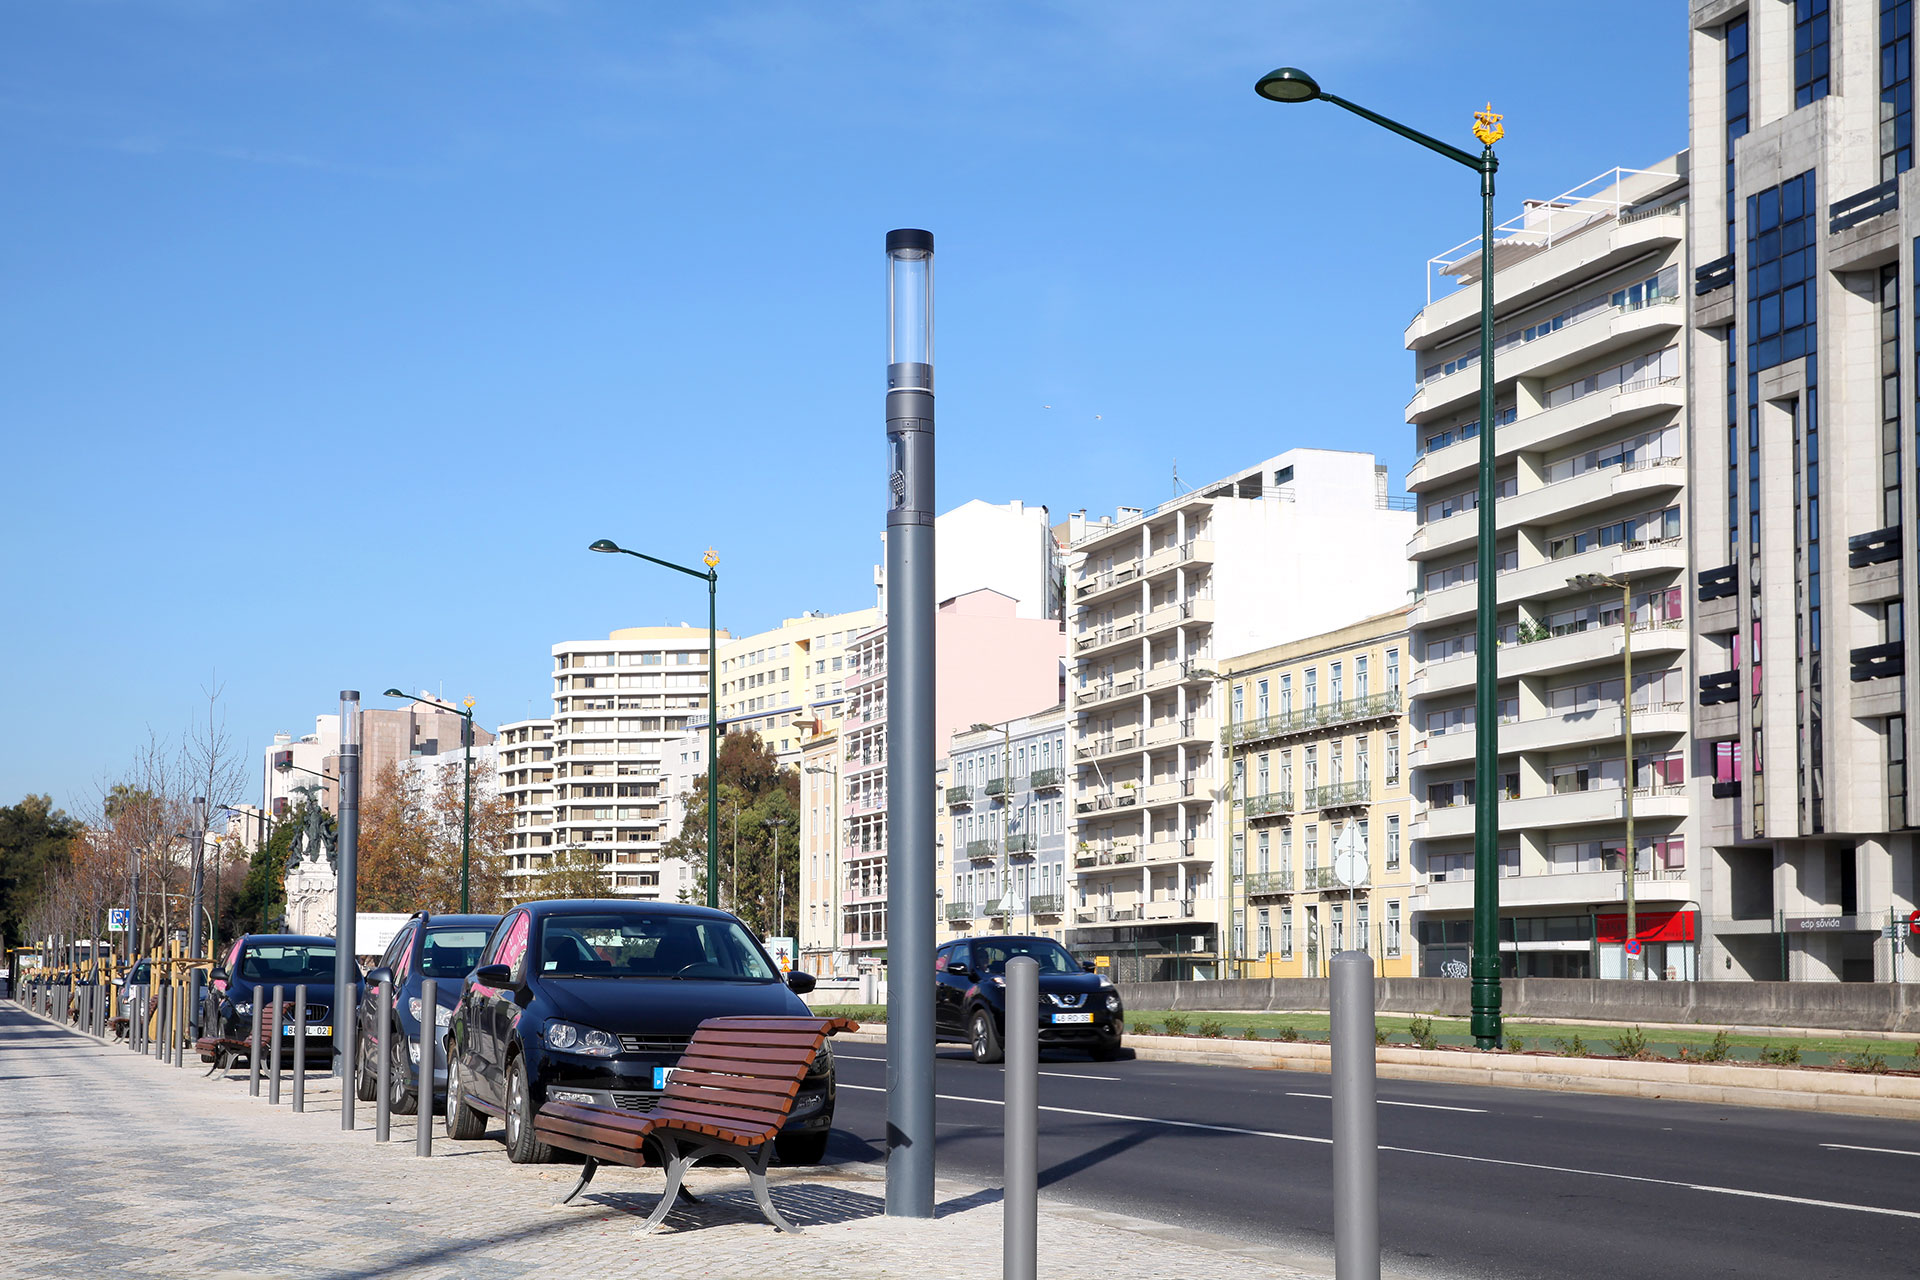 Shuffle and Scala LED luminaires managed by Owlet control system provide a smart lighting solution for the Portuguese capital